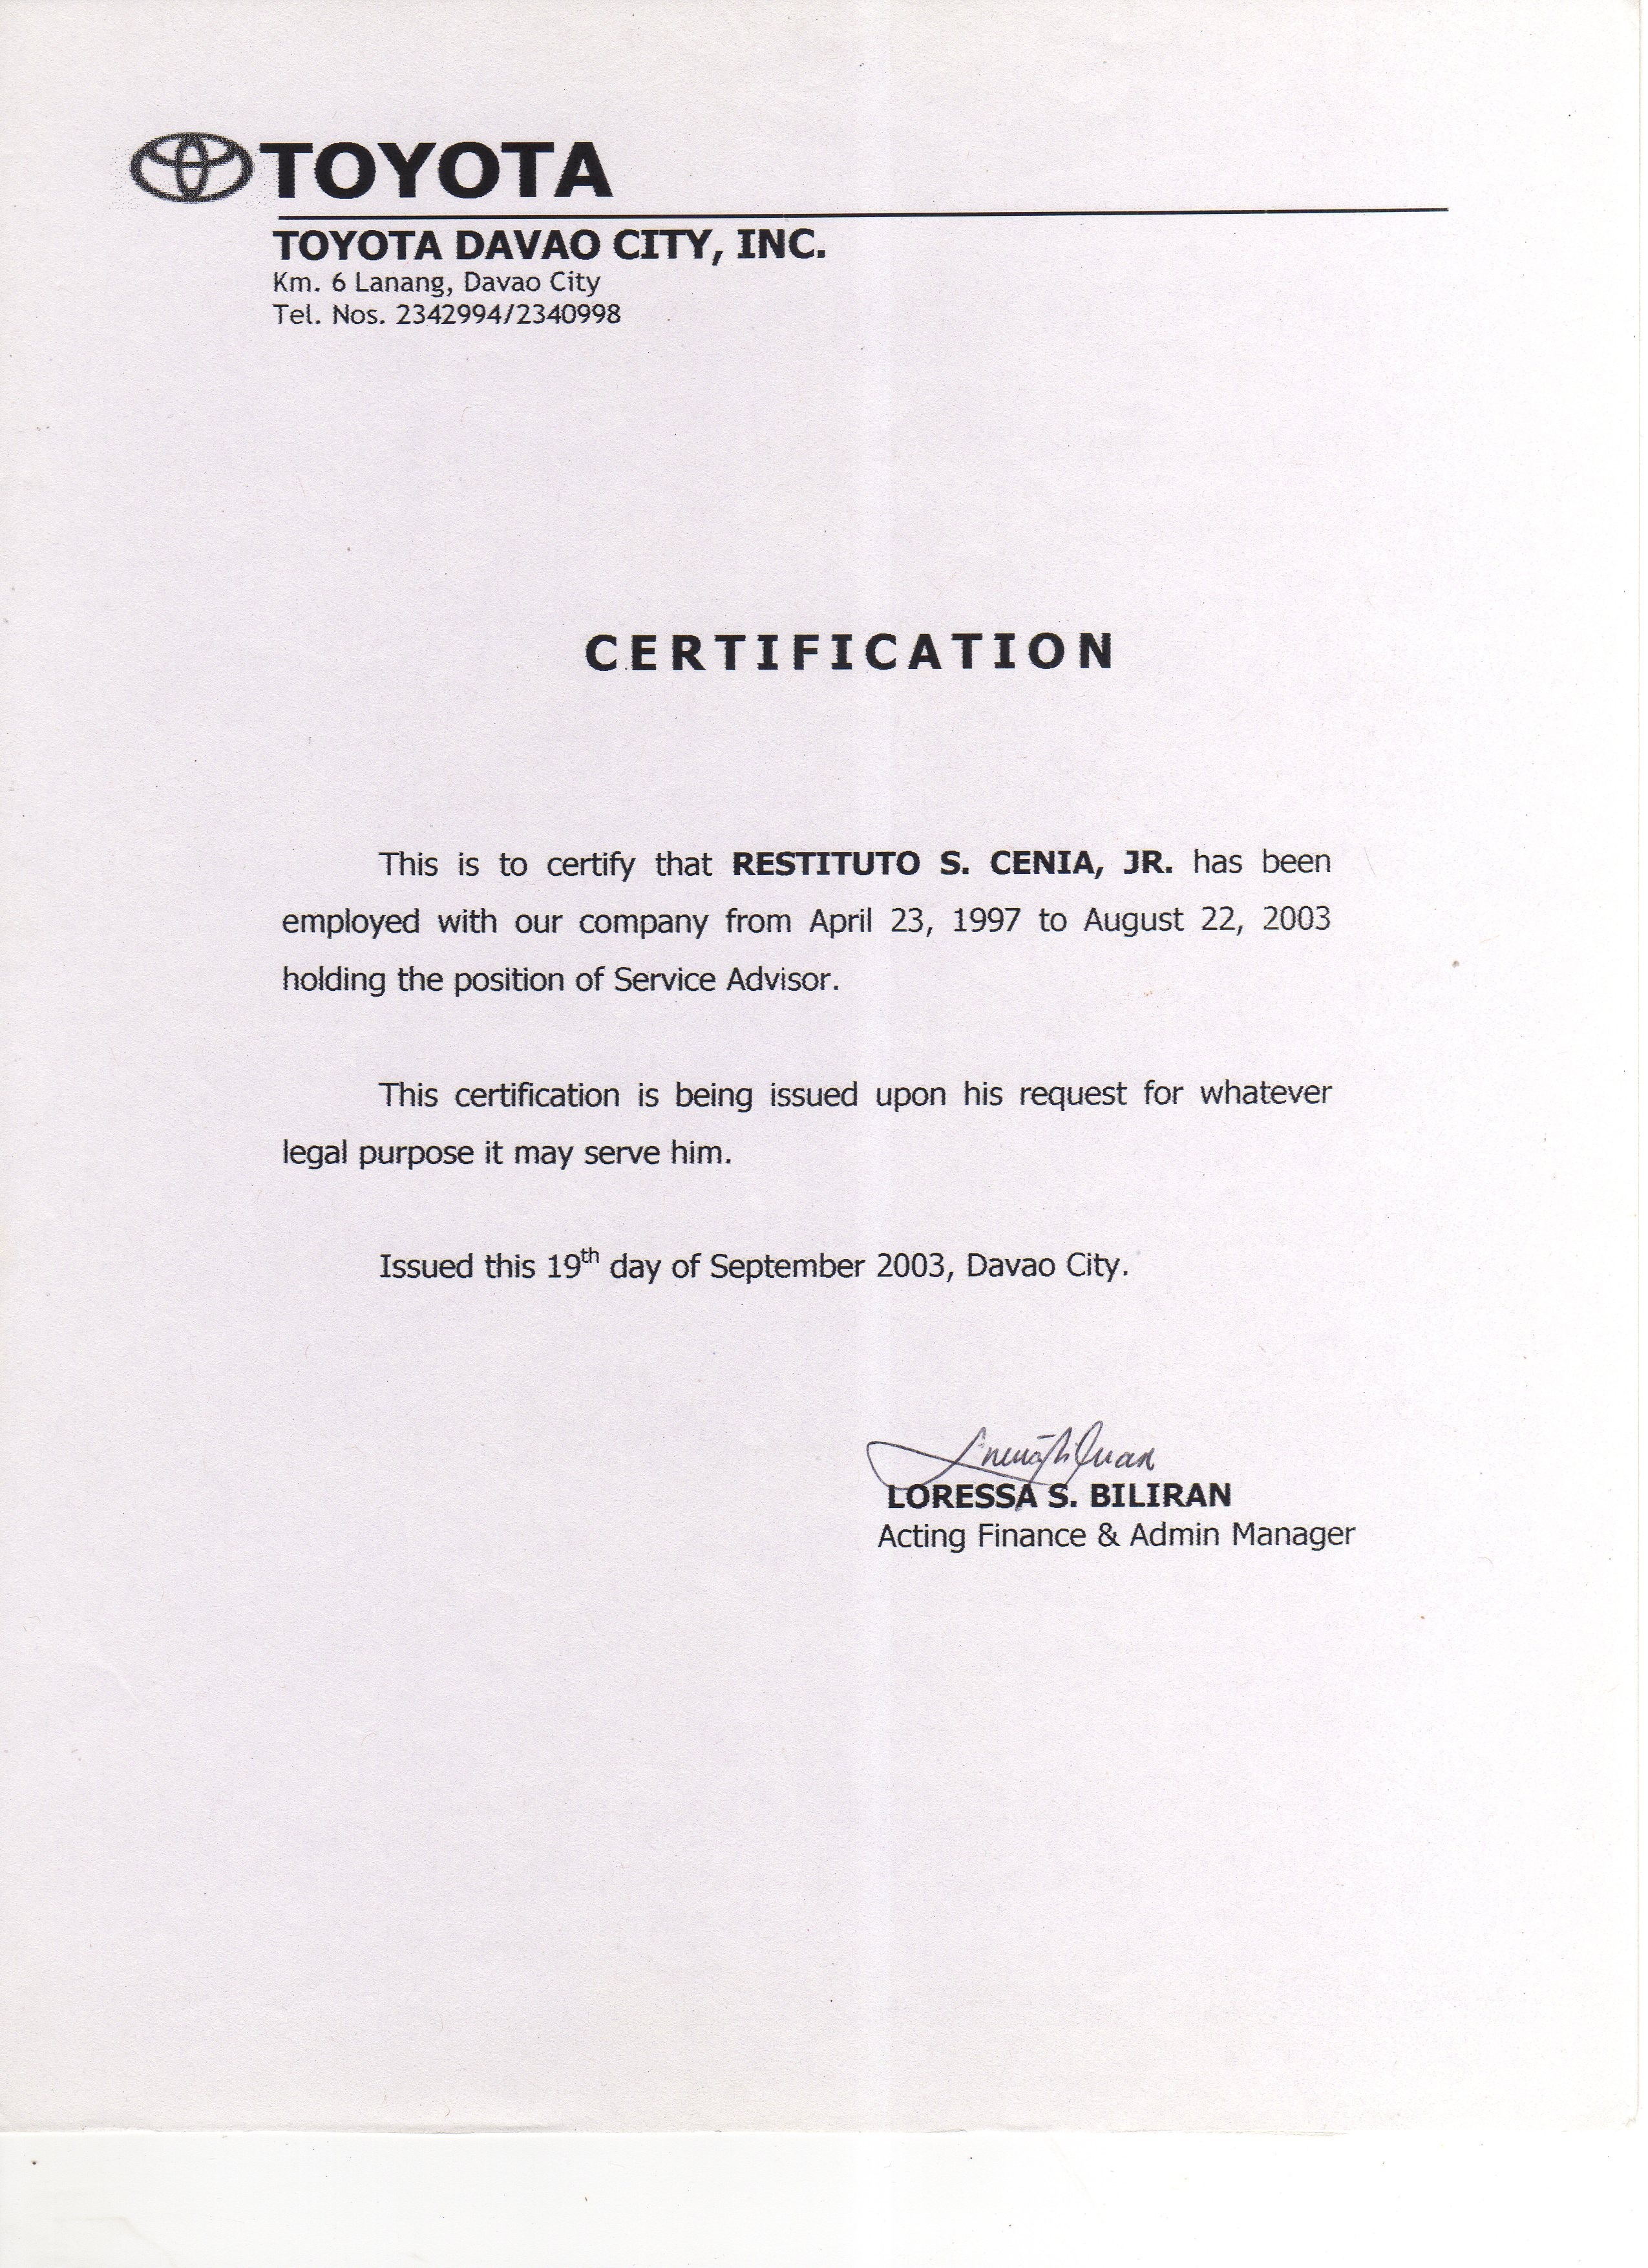 Proof Of Employment and Salary Letter Template - Sample Certificate Employment with Salary Indicated Best